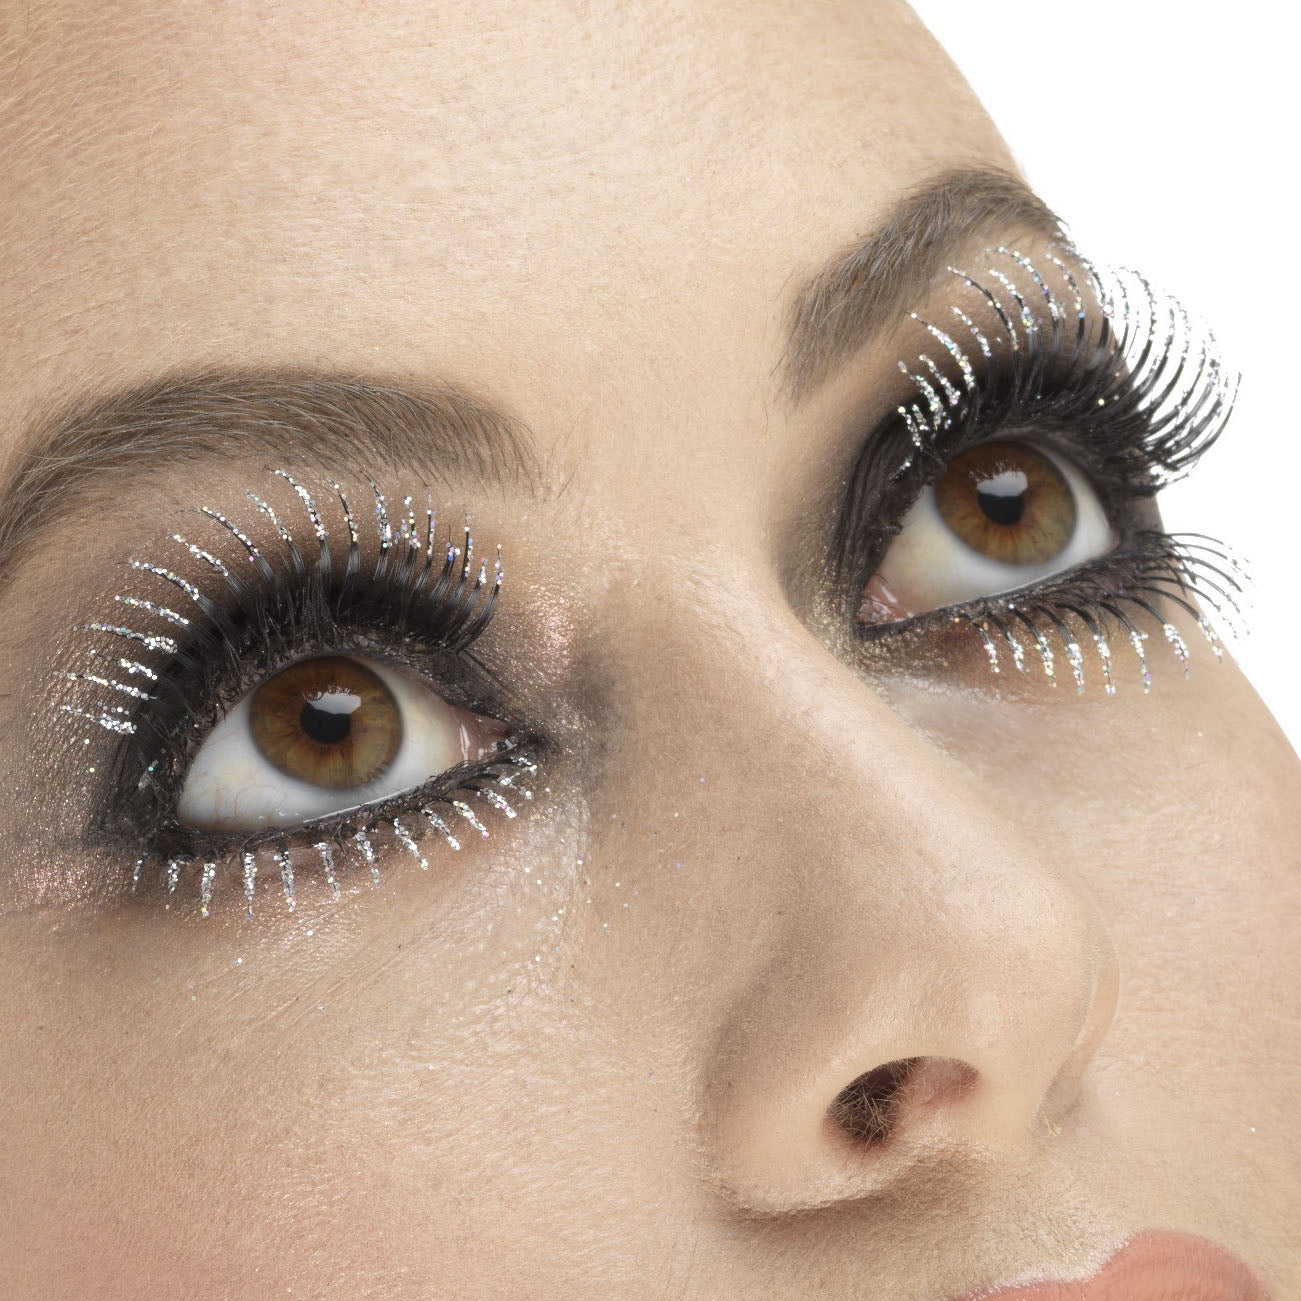 Fever False Eyelashes - Silver Glitter Top & Bottom Set - Red Carpet FX - Professional Makeup